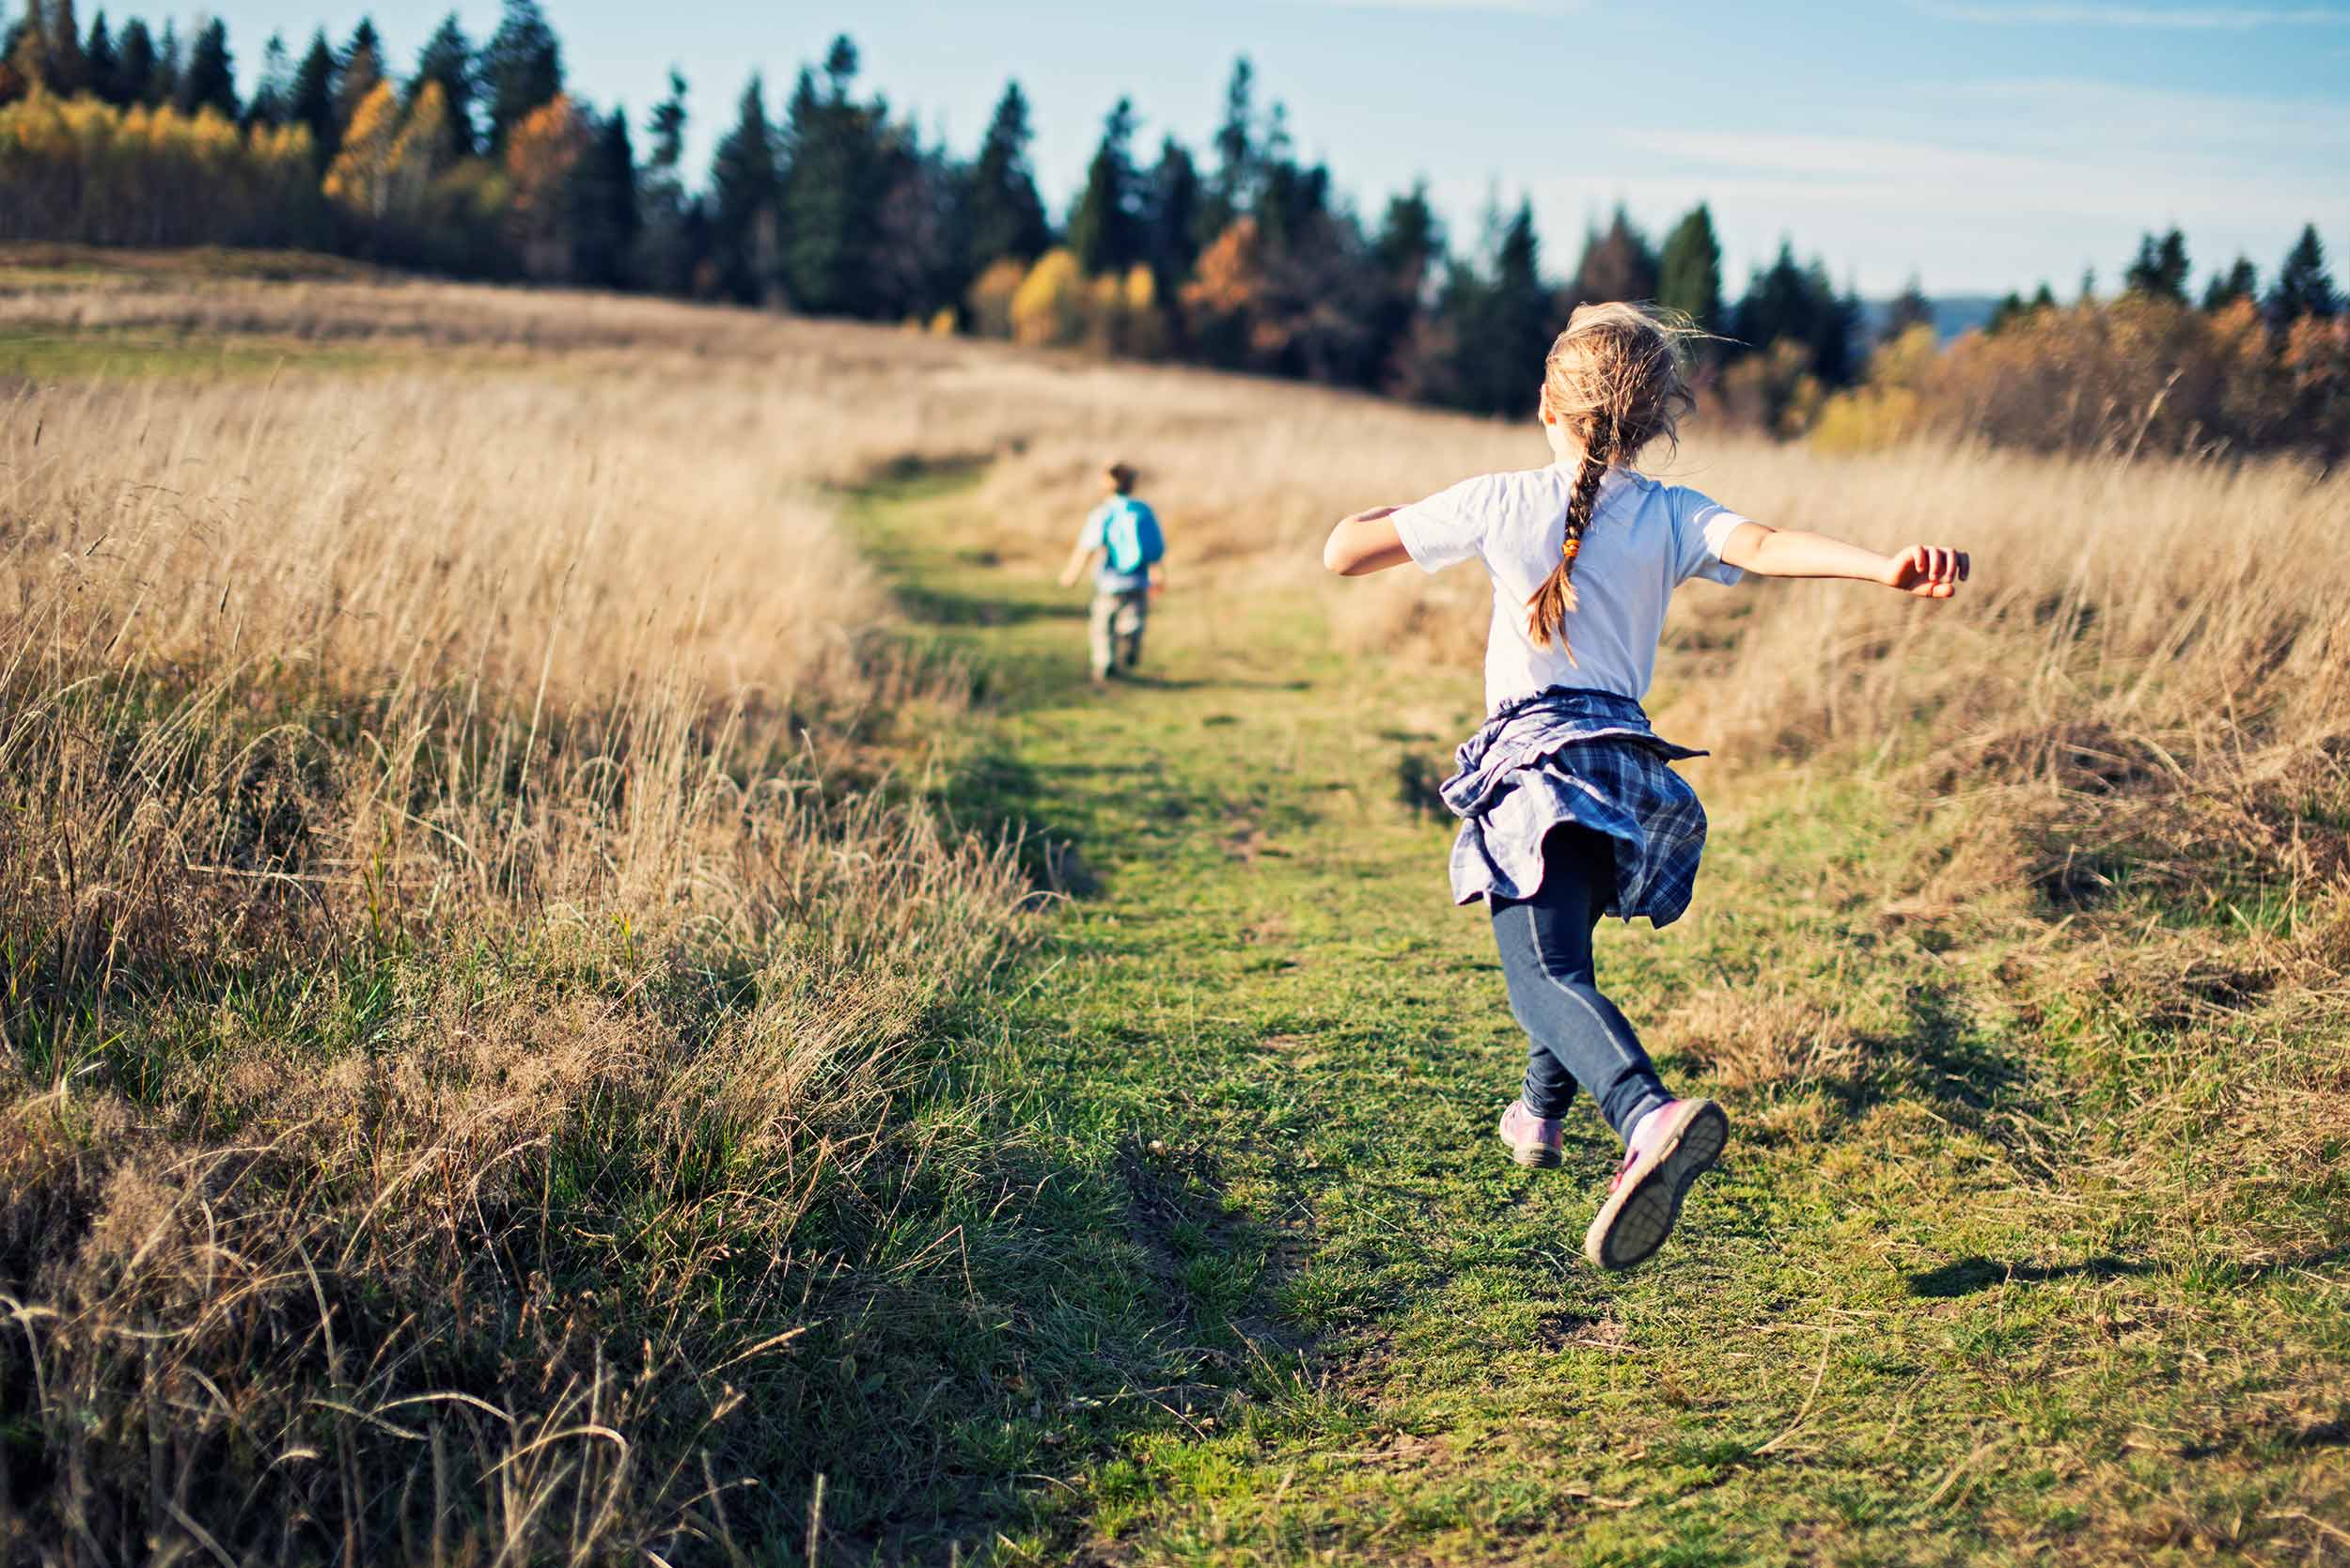 Kids running in the countryside